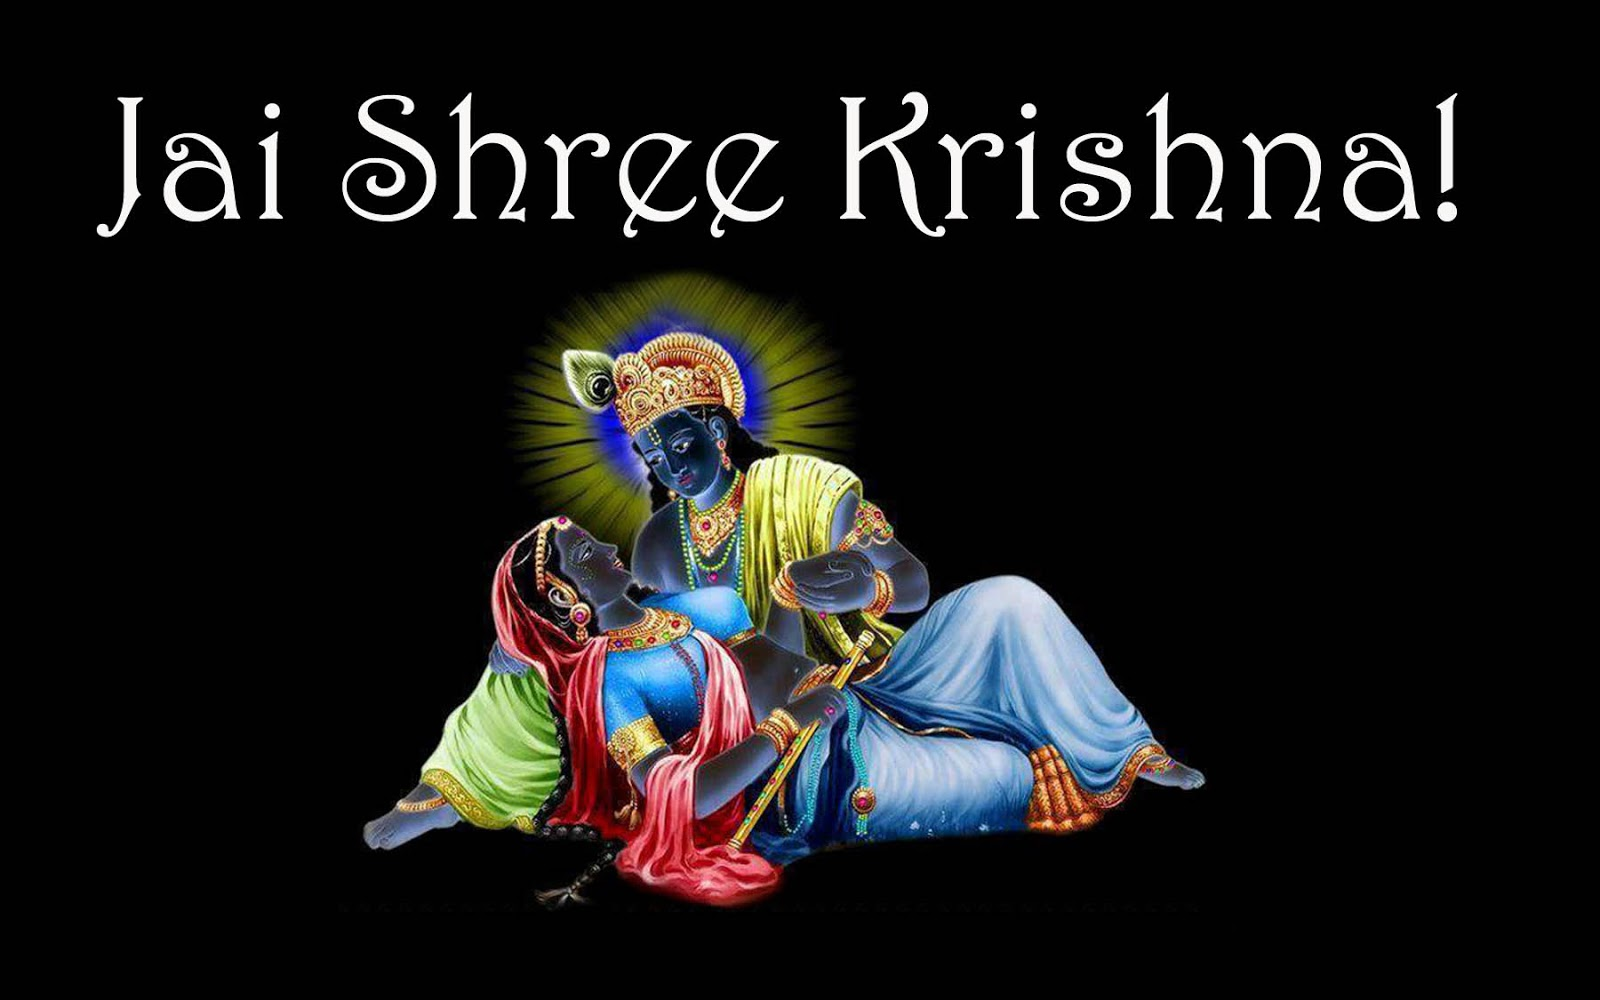 Radhe Krishna Wallpaper With Quotes Radha Krishna Neon Hd Wallpapers Posters Pictures God